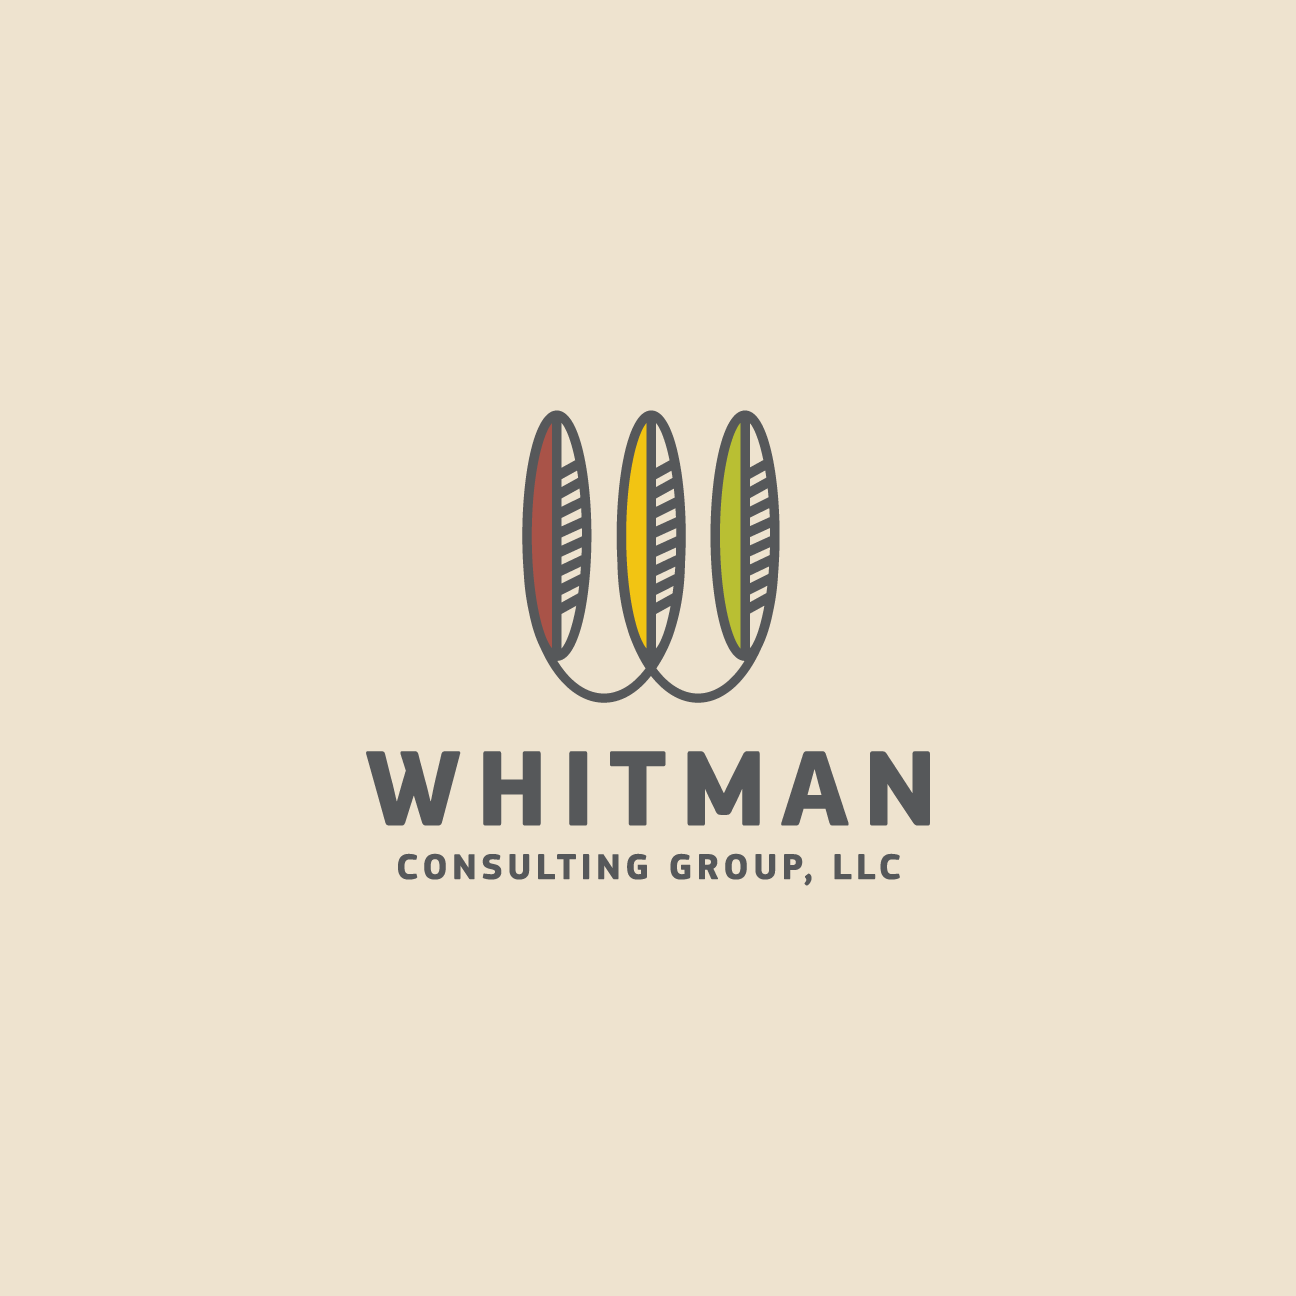 Whitman Consulting Group Logo